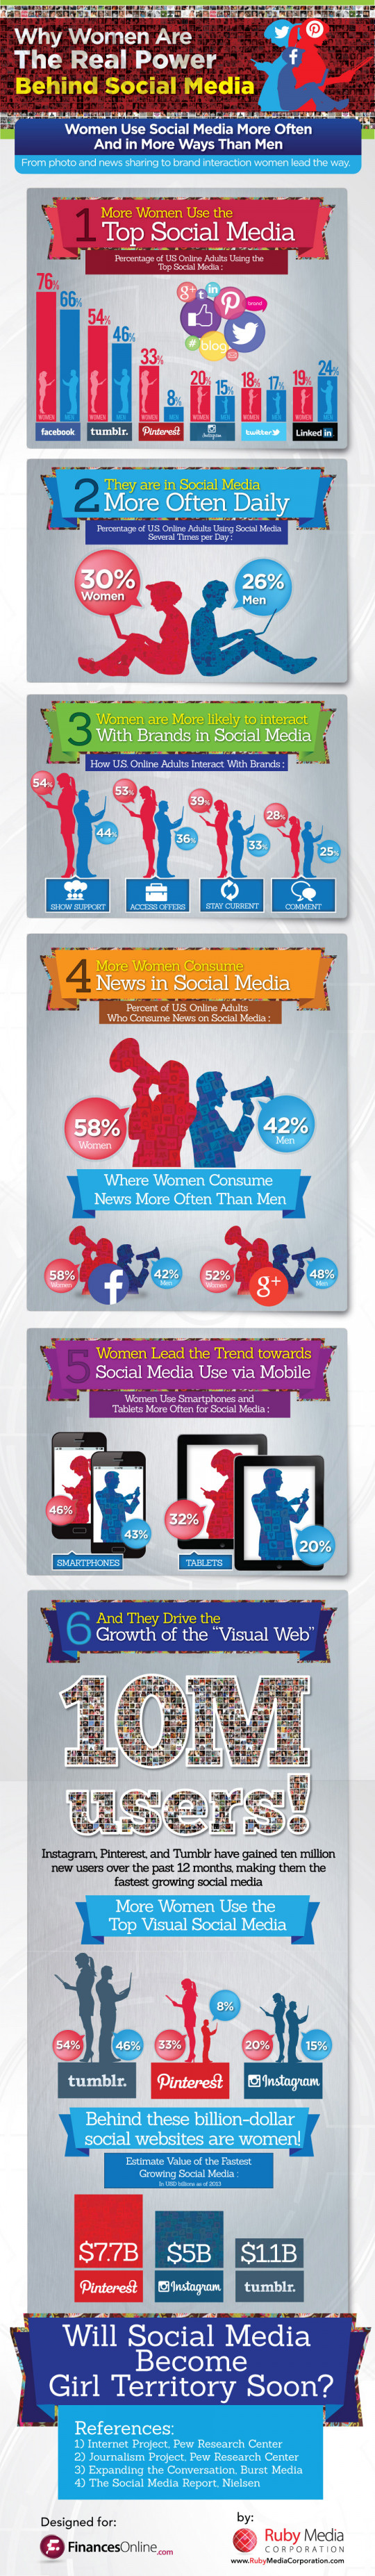 Why Women Are The Real Power Behind Social Media